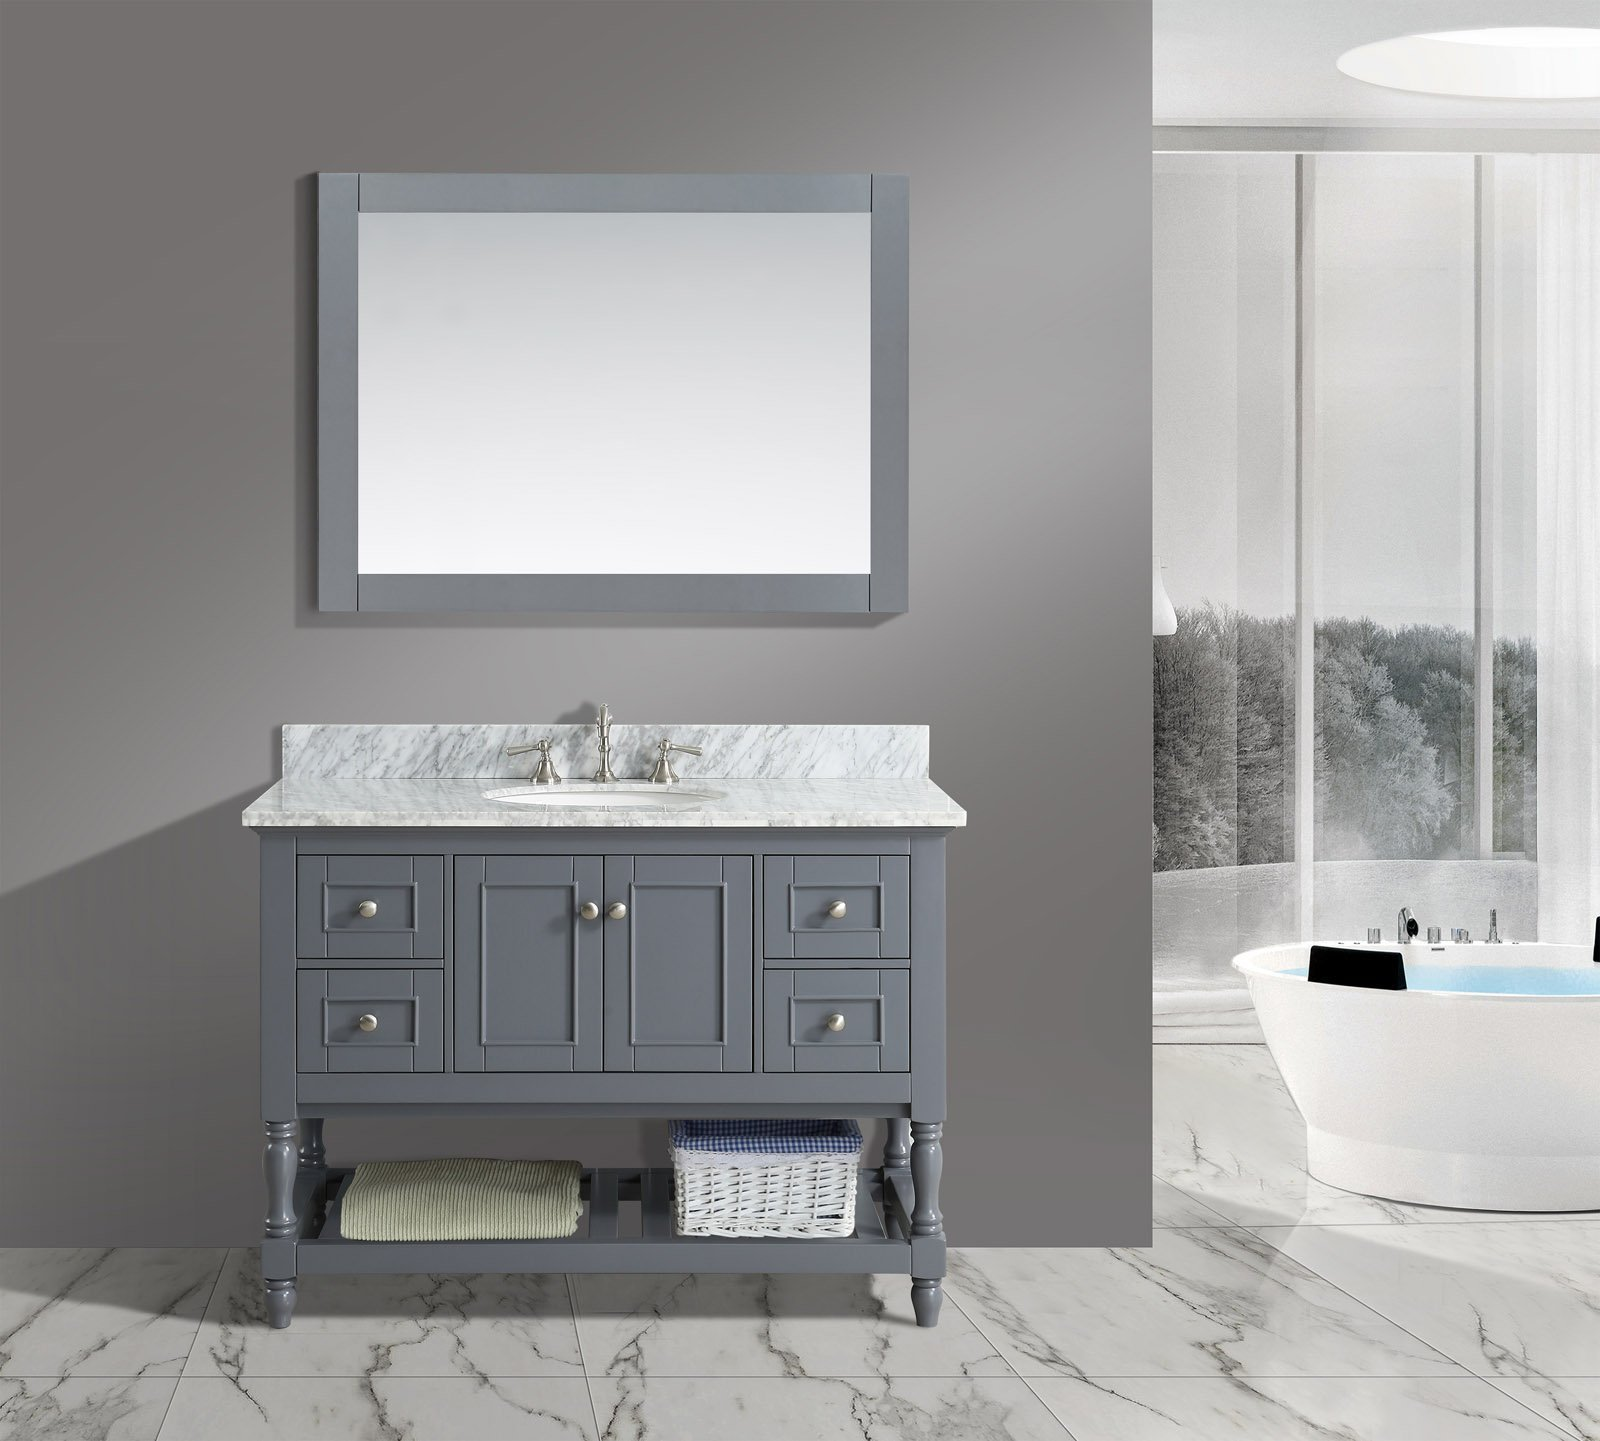 UrbanFurnishing.net - Silvia 48-Inch (48'') Bathroom Sink Vanity Set with White Italian Carrara Marble Top - Charcoal by UrbanFurnishing.net